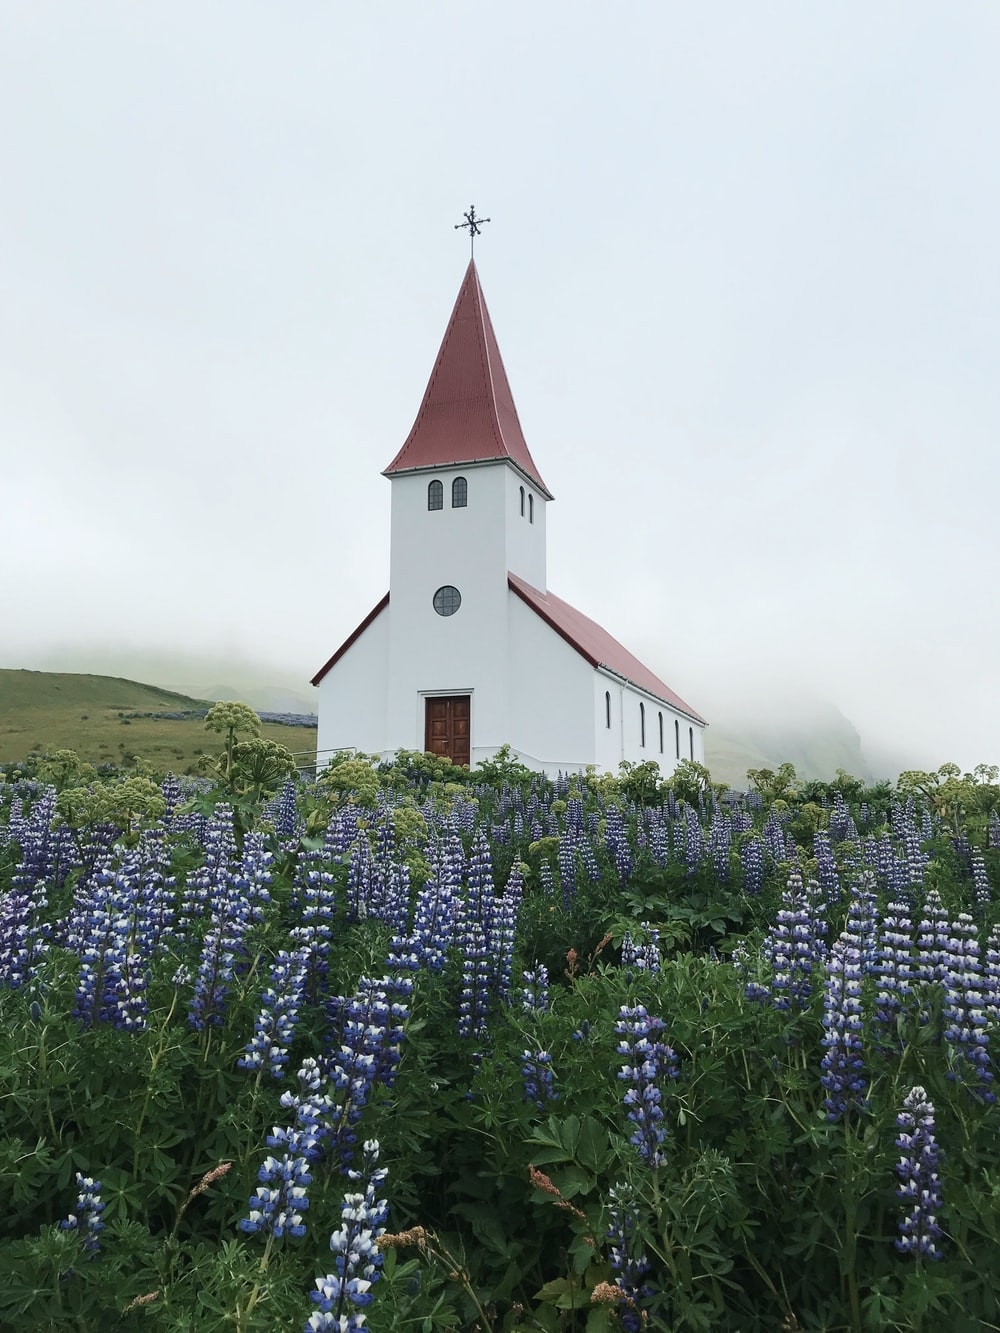 white and red church surrounded by purple flowers during daytime